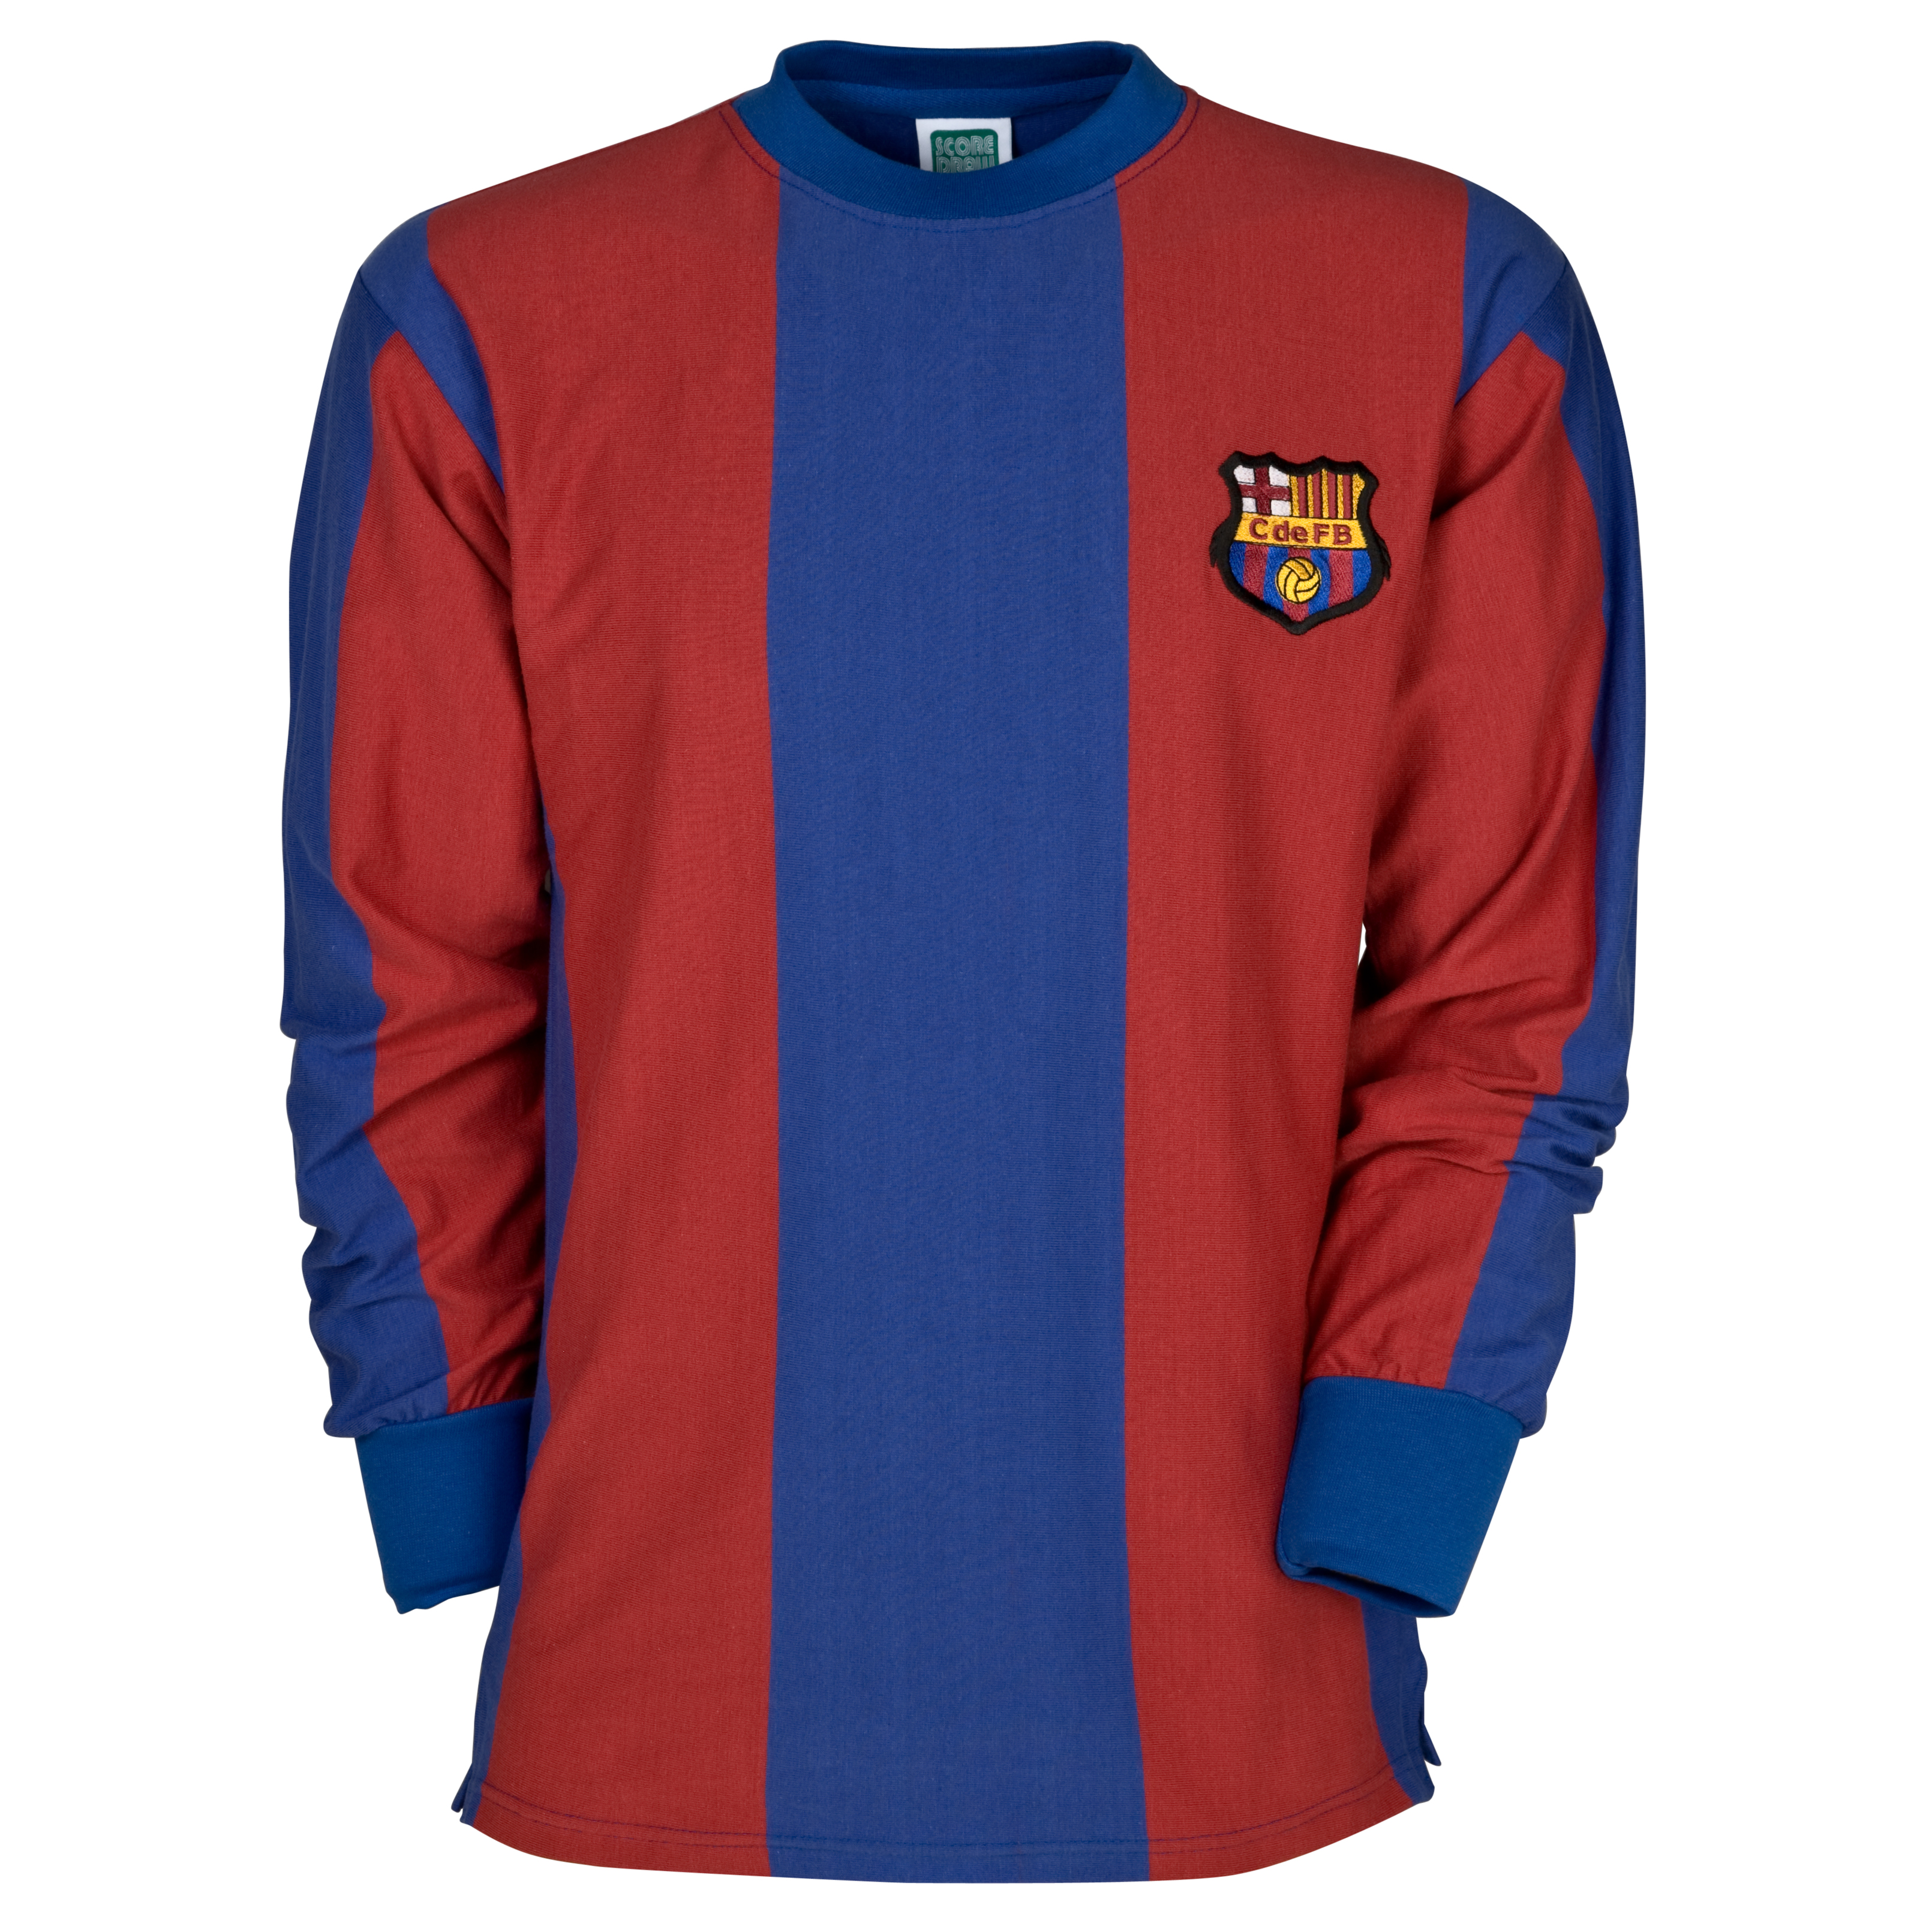 Barcelona 1970 Home Retro Shirt